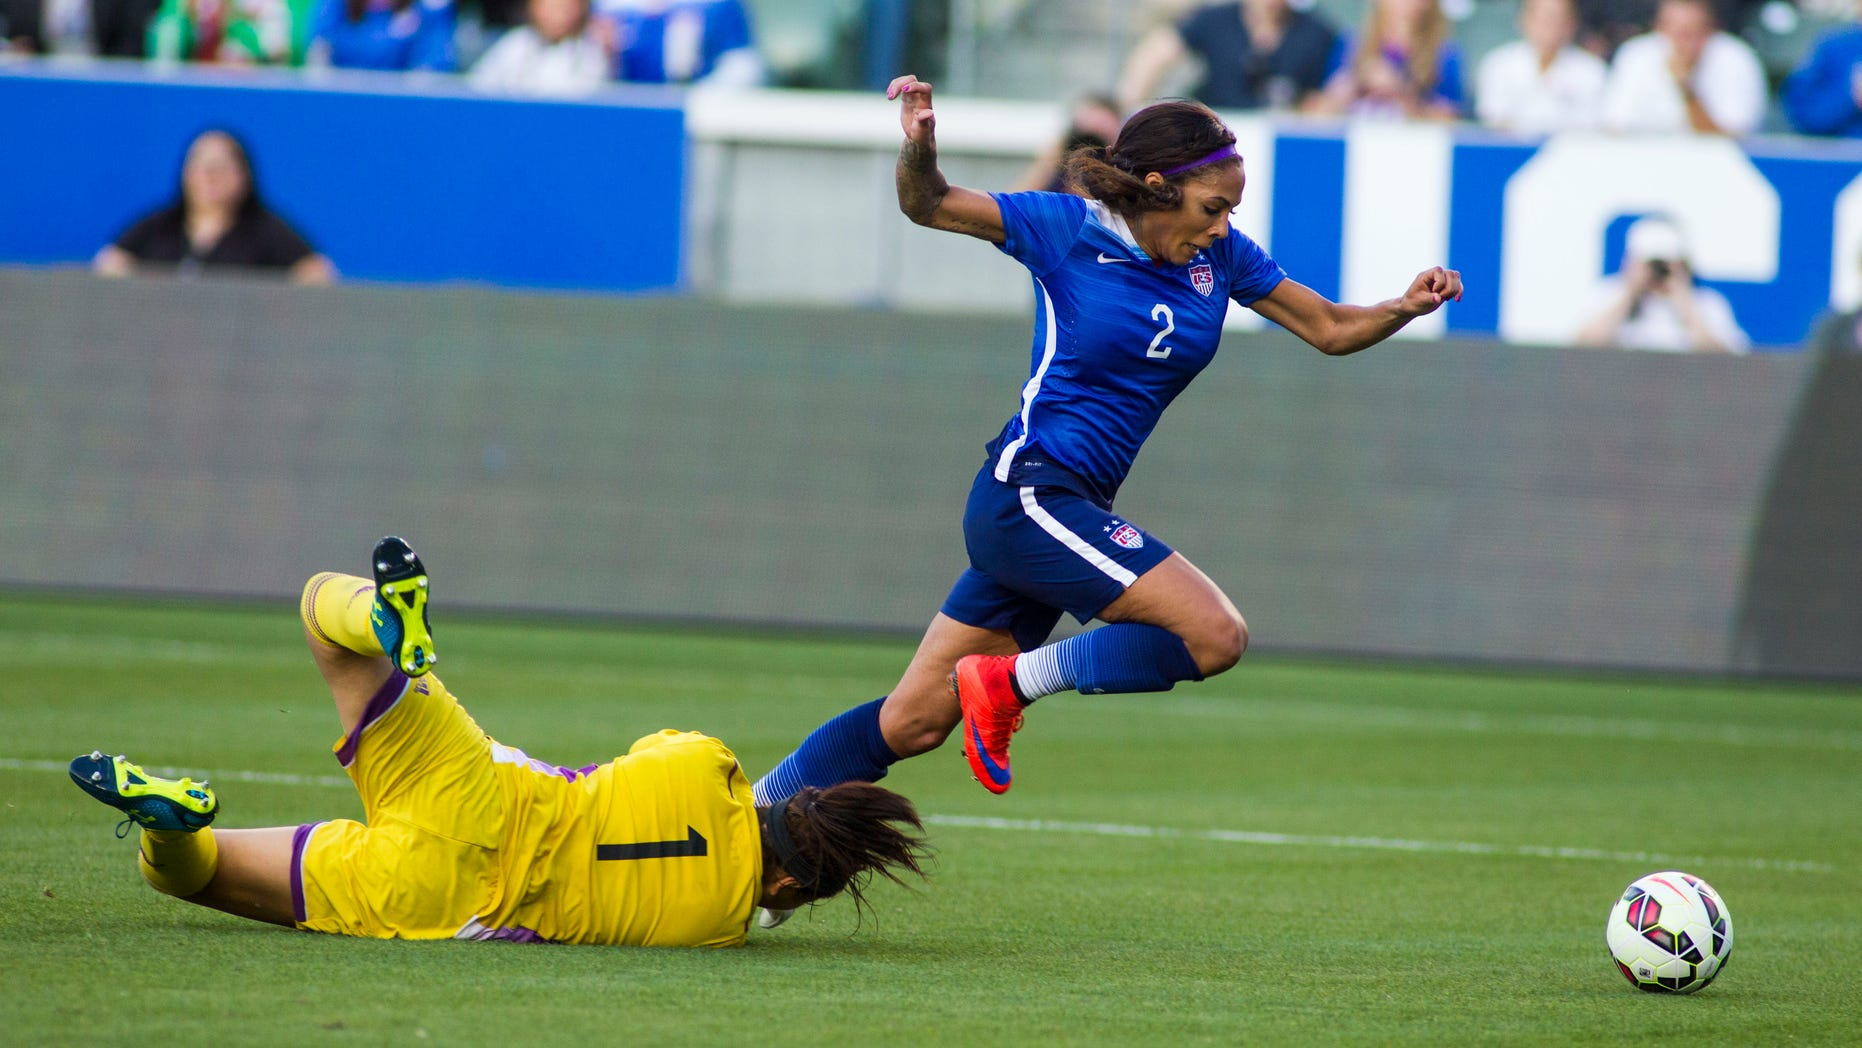 United Statesâ forward Sydney Leroux, right, dives the ball past Mexico's goalkeeper Cecilia Santiago to score the opening goal during the first half of their friendly soccer match, Sunday, May 17, 2015, at StubHub Center? in Carson, Calif. (AP Photo/Ringo H.W. Chiu)